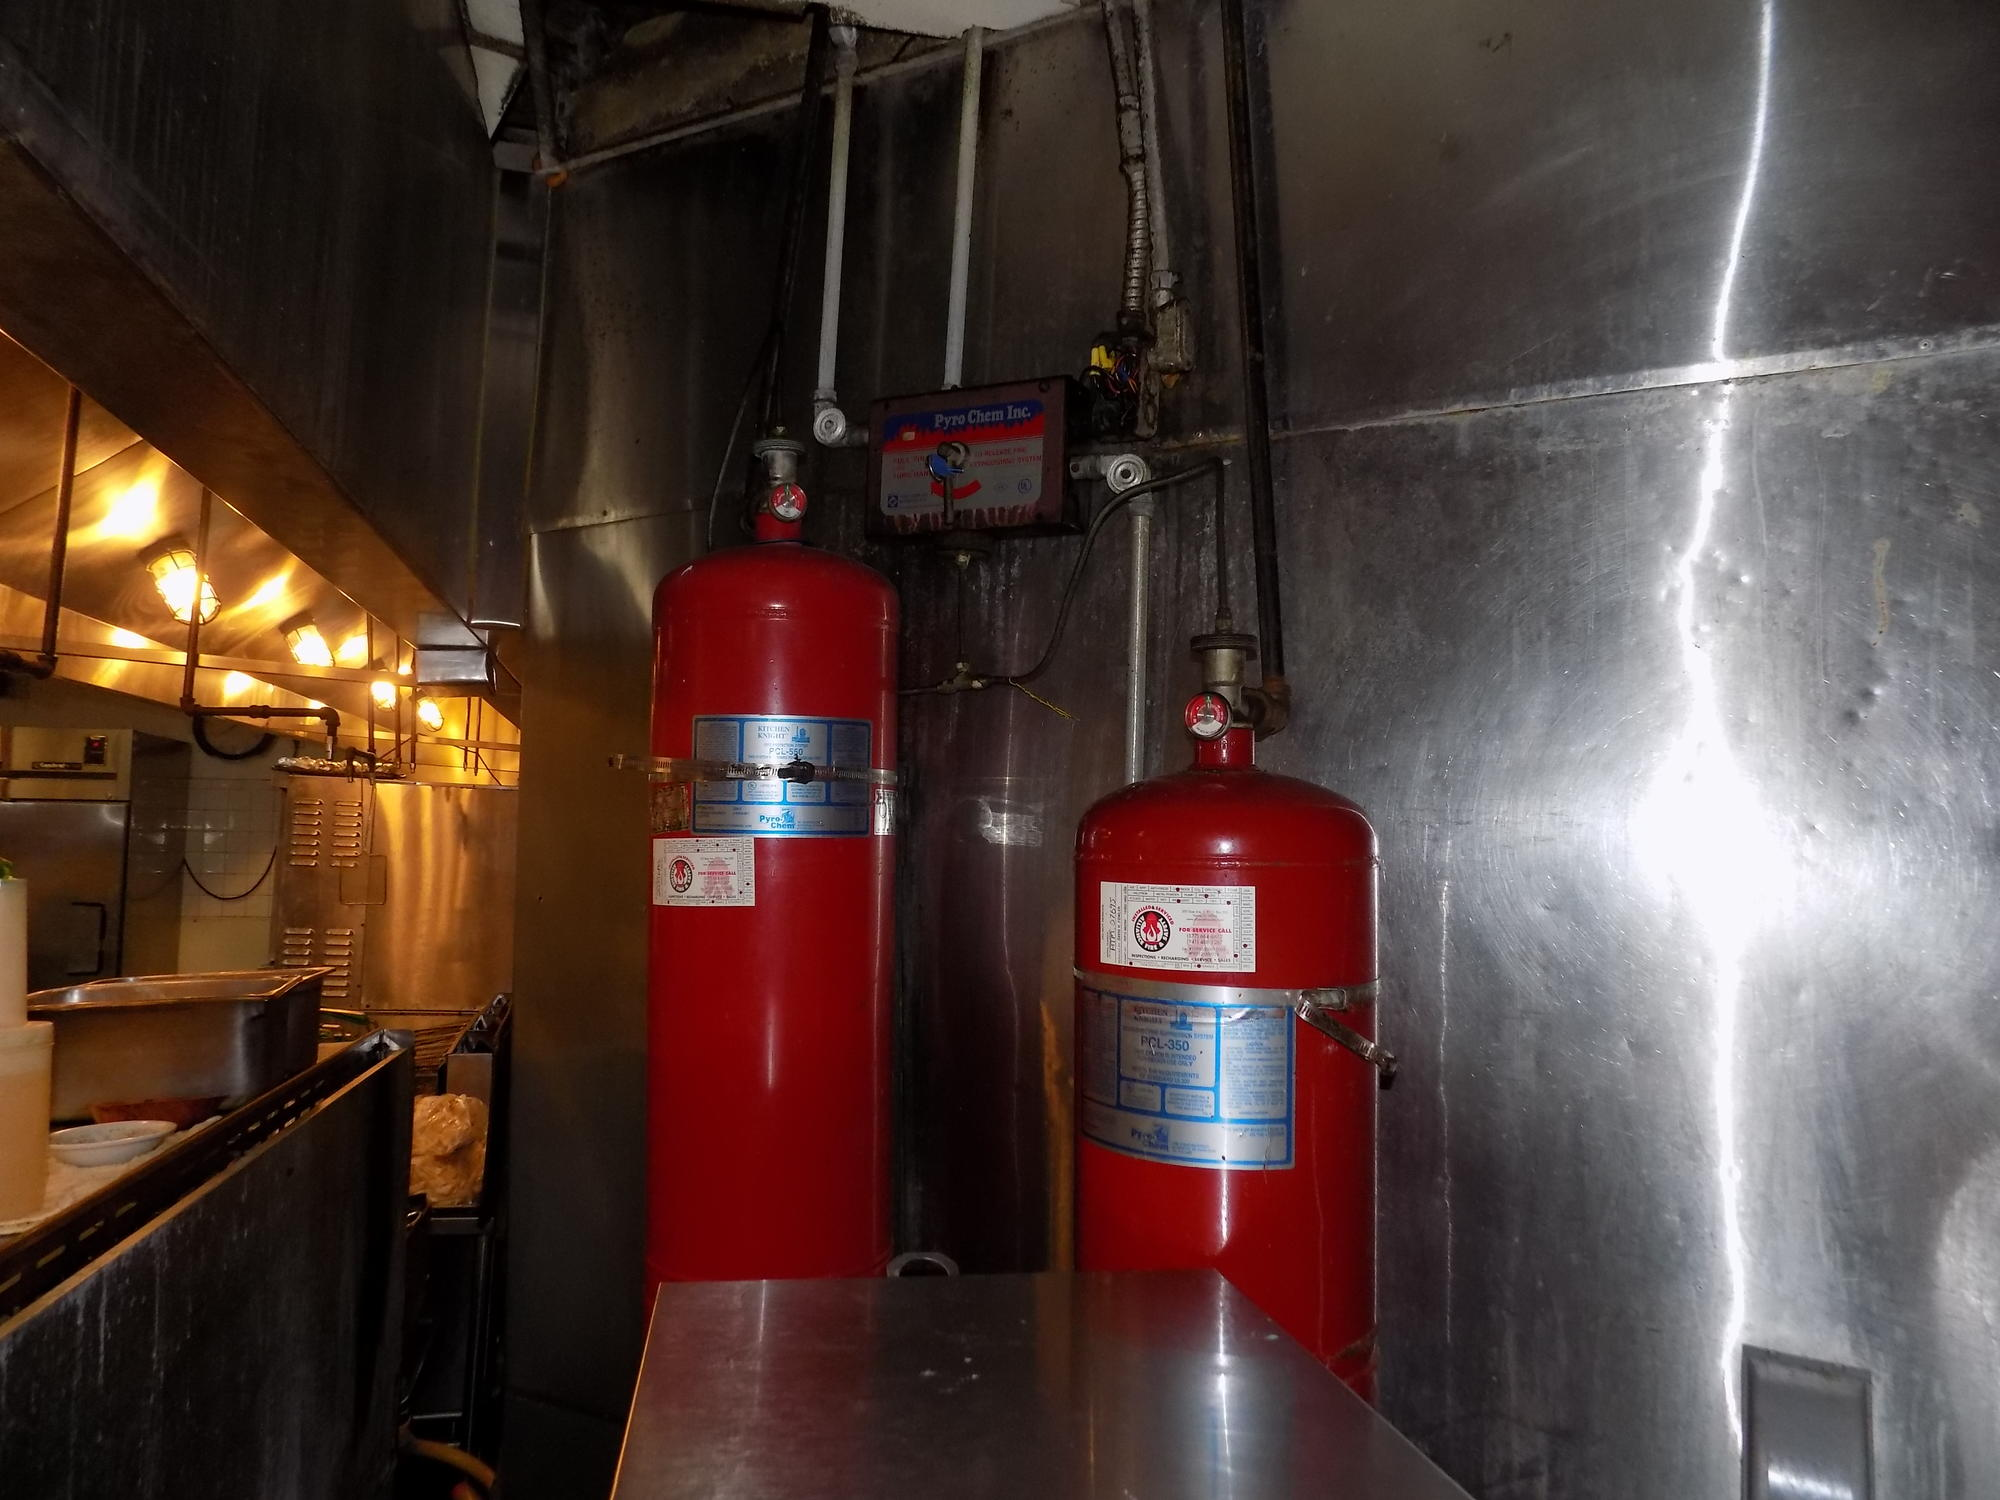 Commercial kitchen fire suppression.